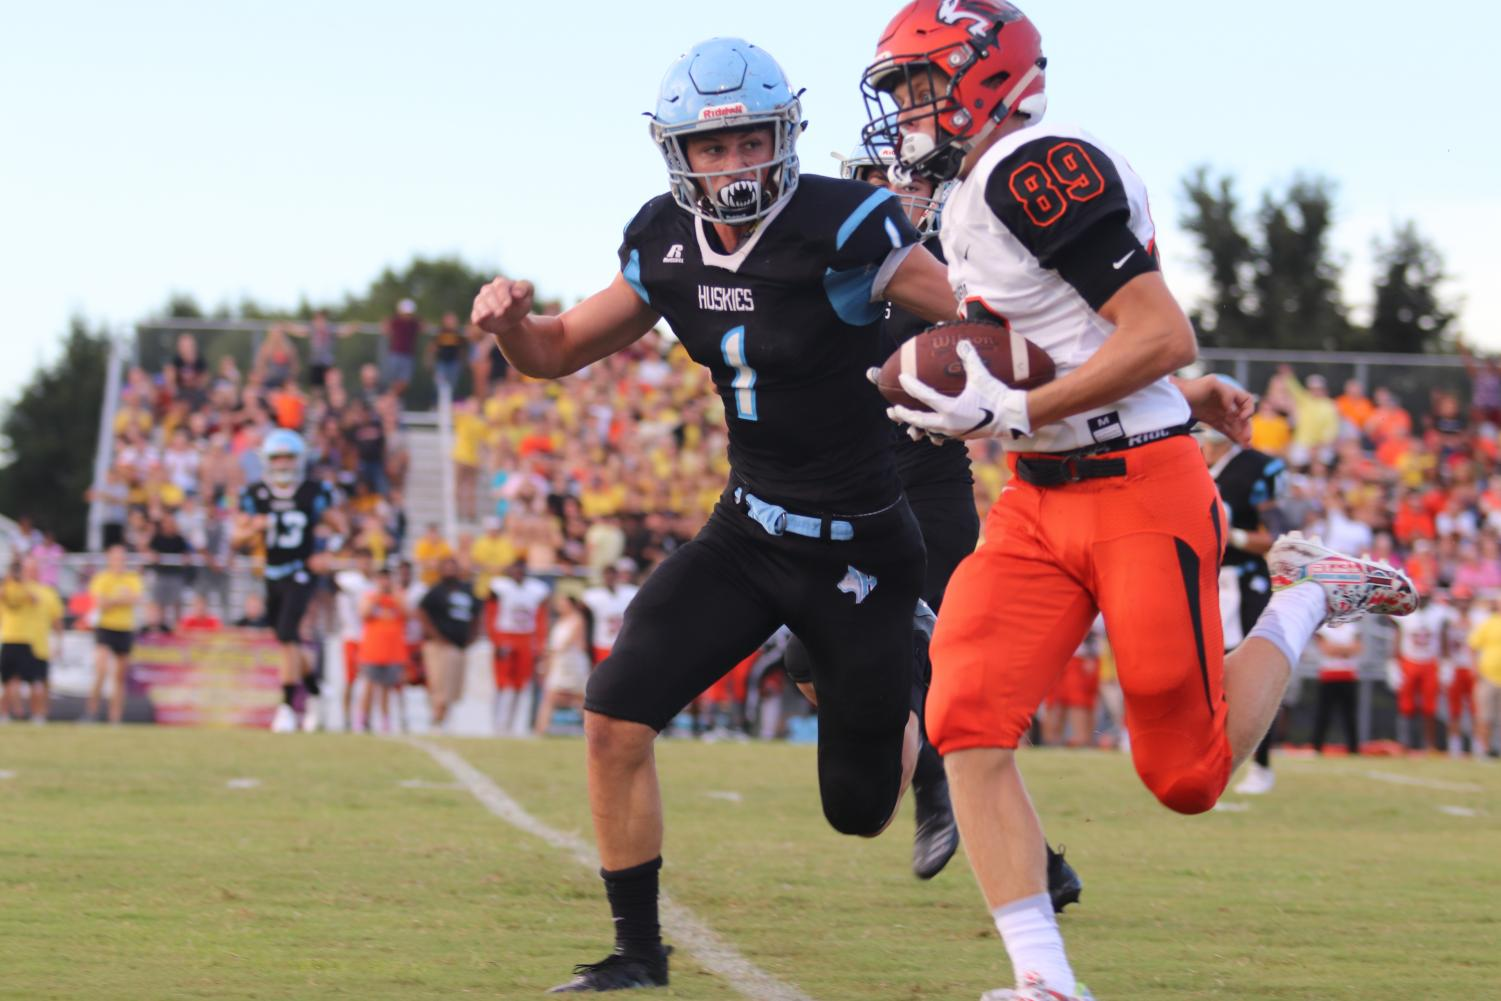 Defensive back Ian Watts goes for a tackle on Oviedo receiver Matt Rucker. Though Watts kept the team in the game with good defense and a 97-yard kickoff return for a touchdown, the varsity team lost to the Lions, 44-23.